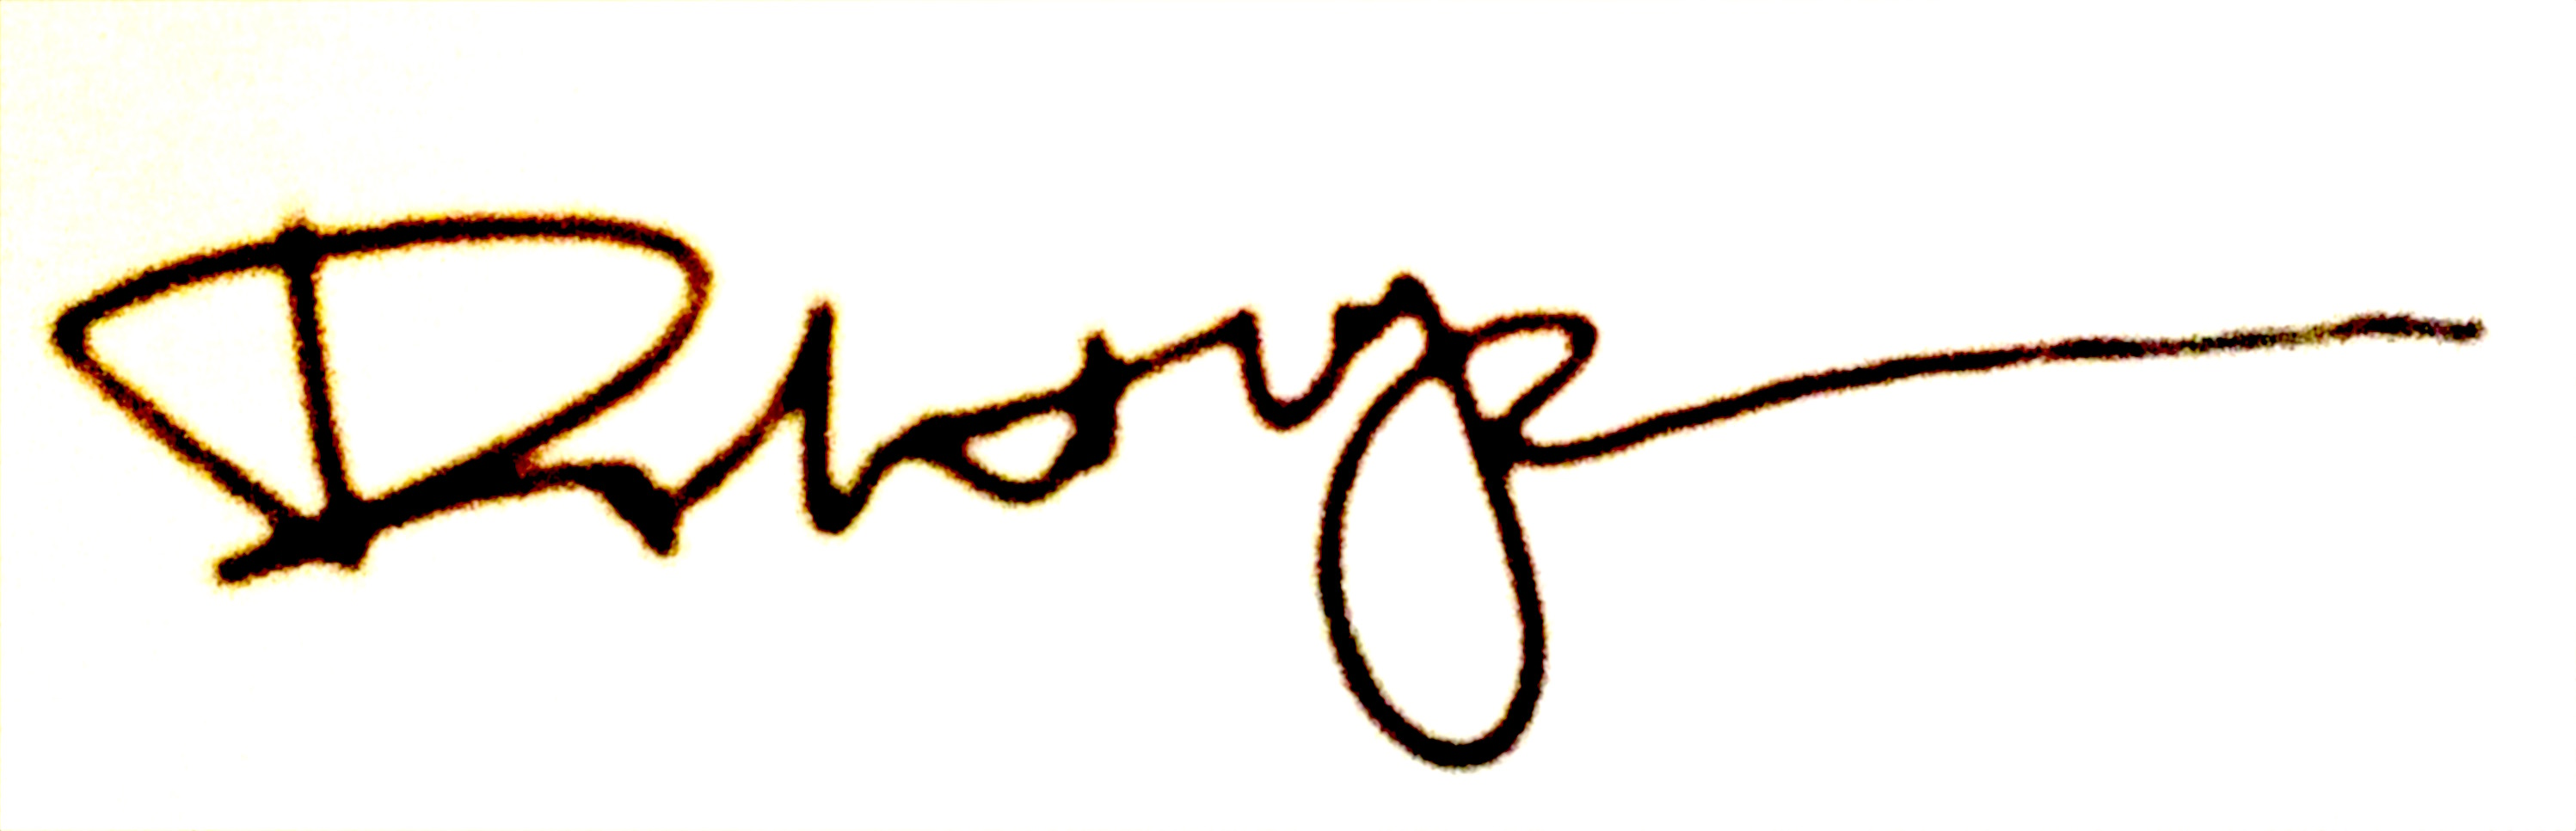 robert hymes's Signature